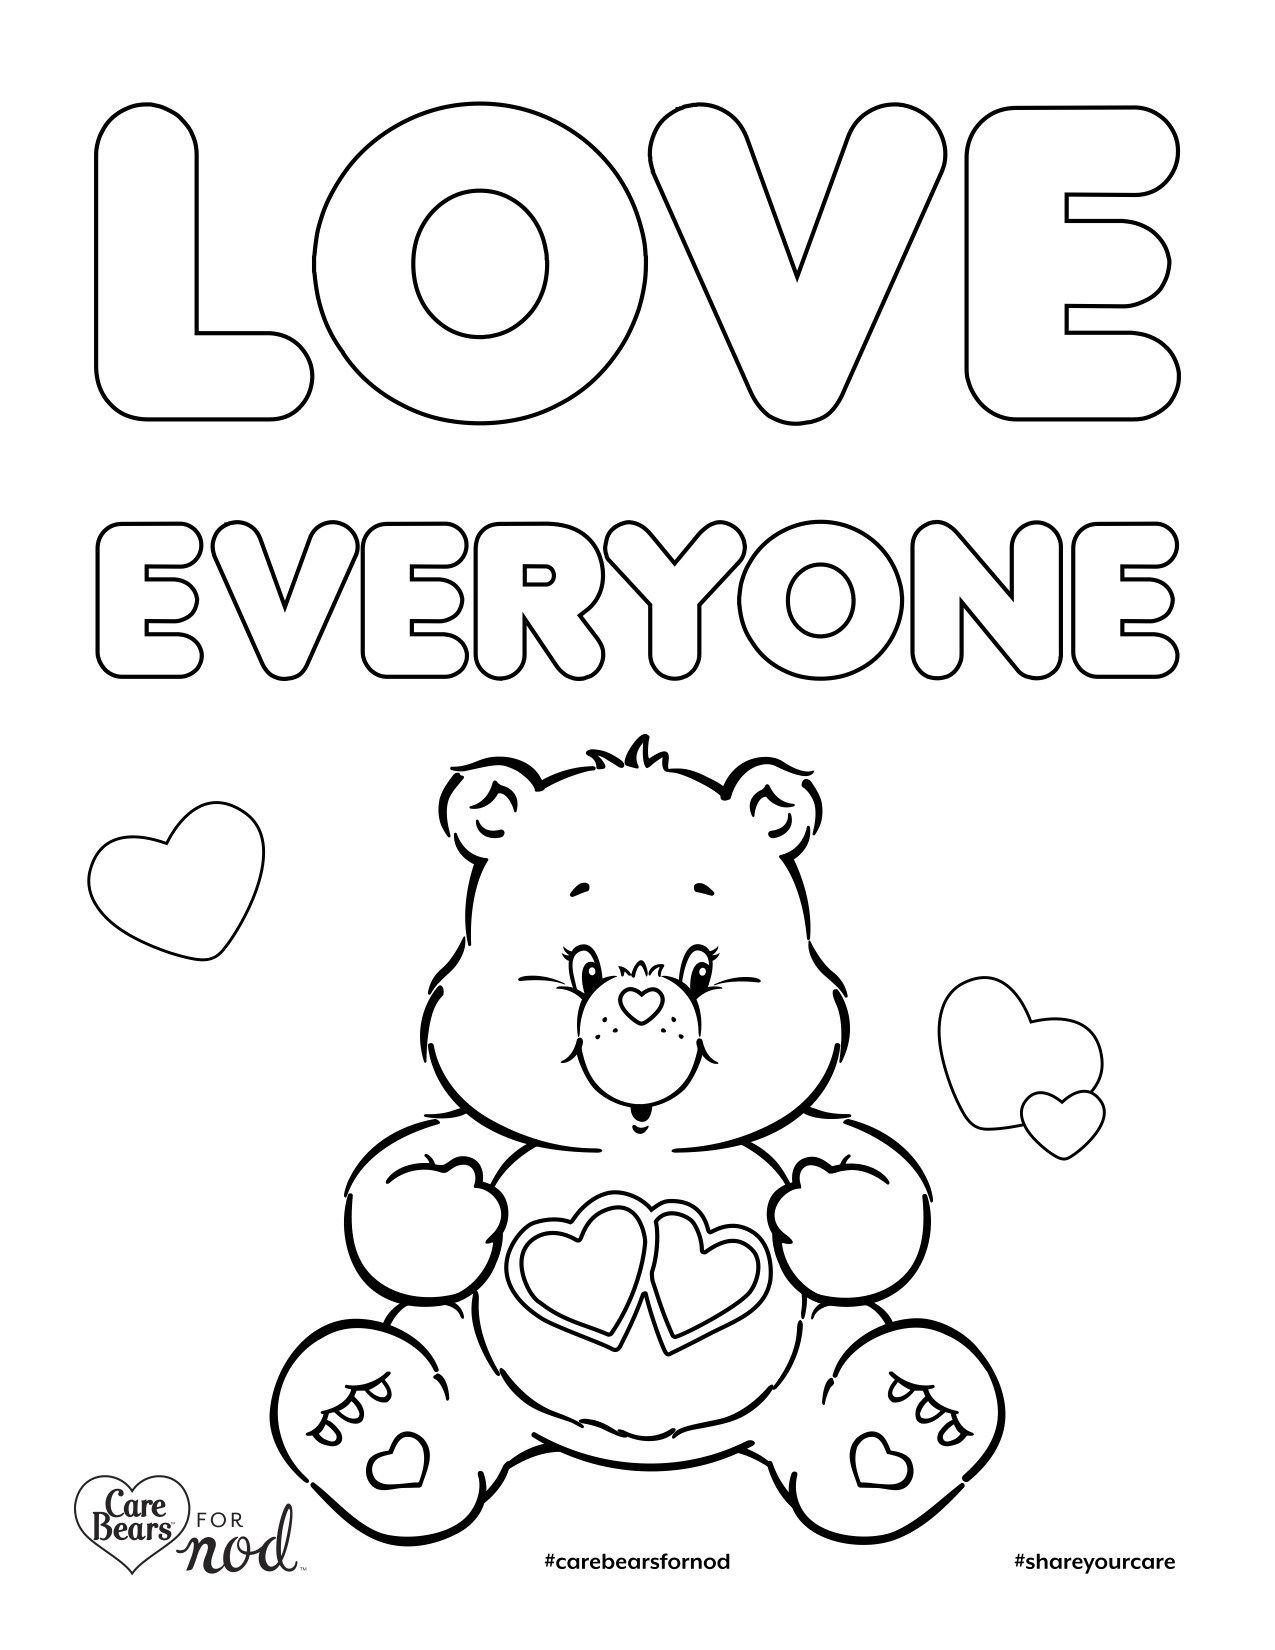 Share Your Care Day Printable Care Bears Coloring Pages Crate Kids Blog Bear Coloring Pages Coloring Pages Kindergarten Coloring Pages